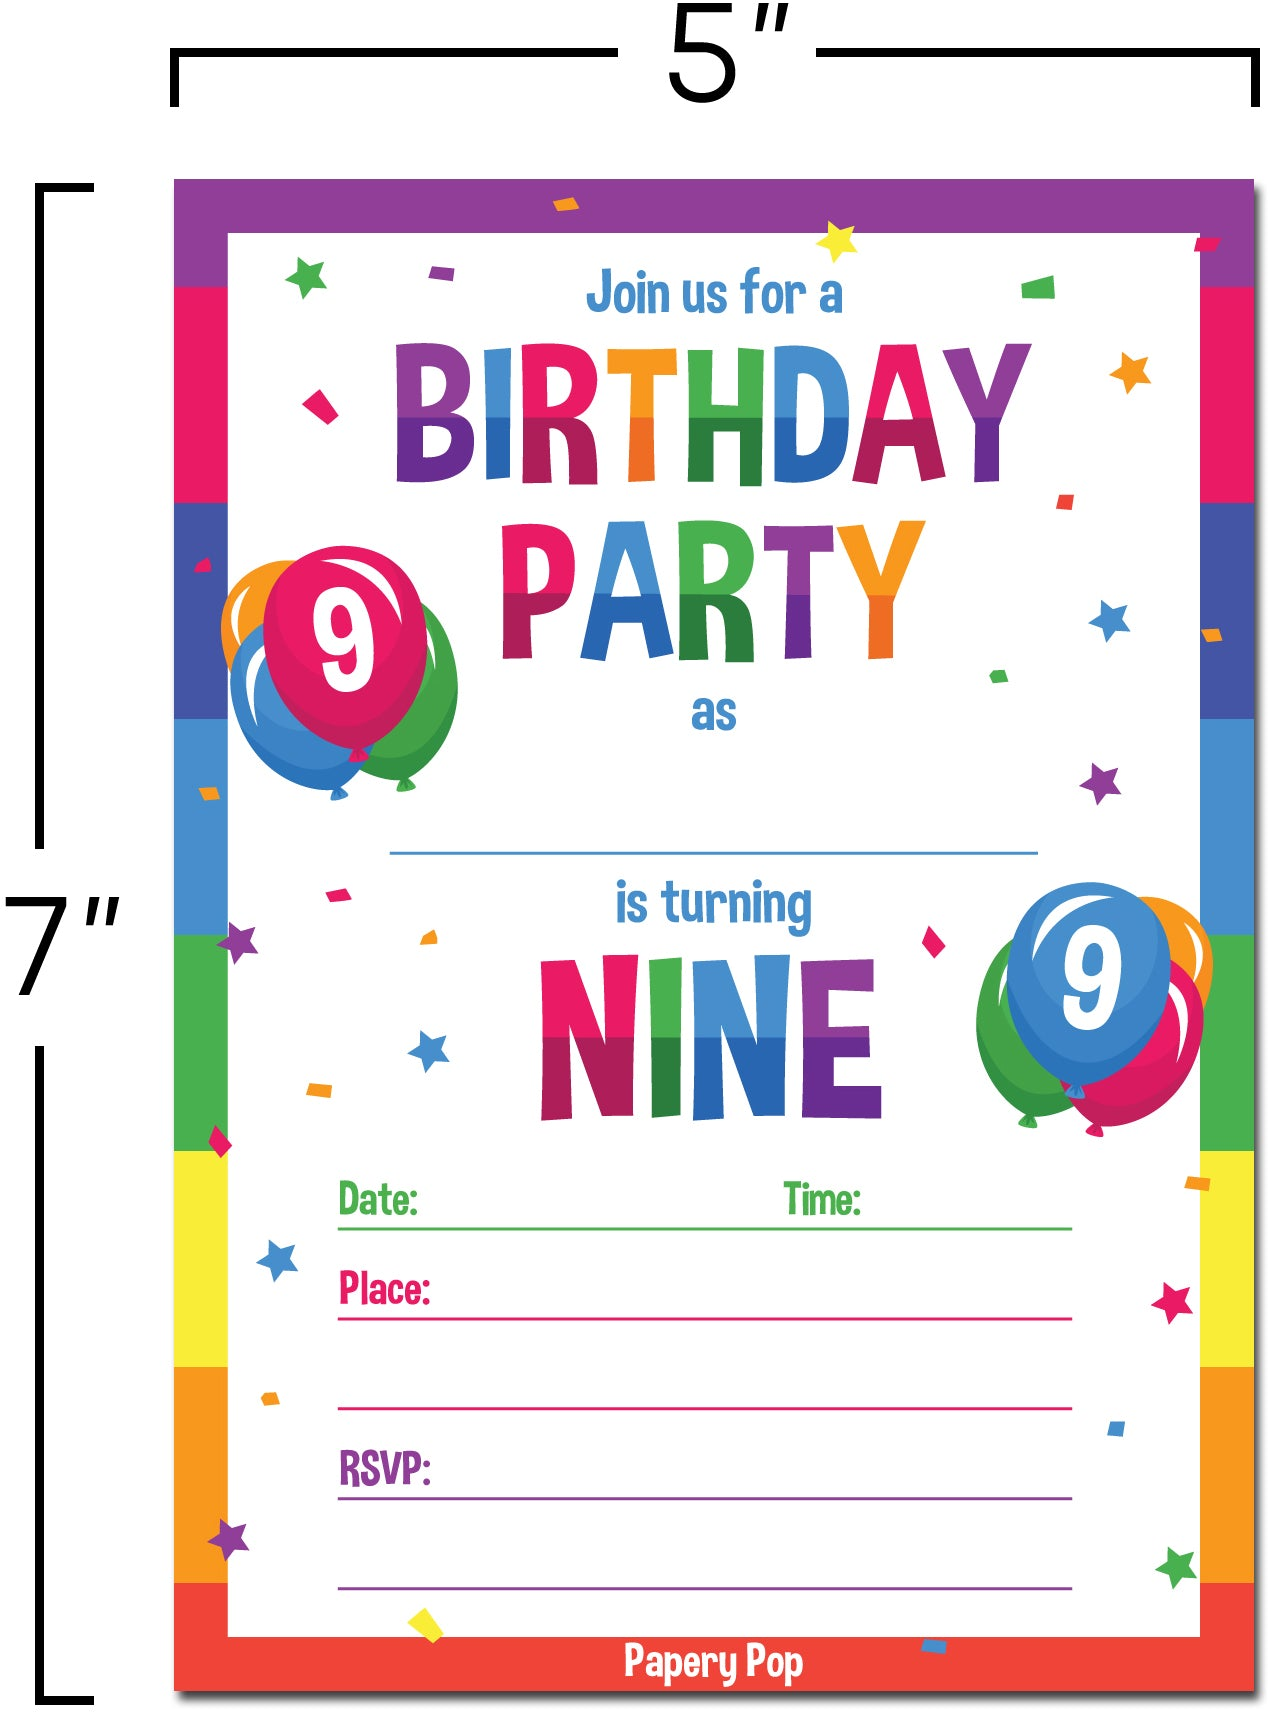 9 Year Old Birthday Party Invitations With Envelopes 15 Count